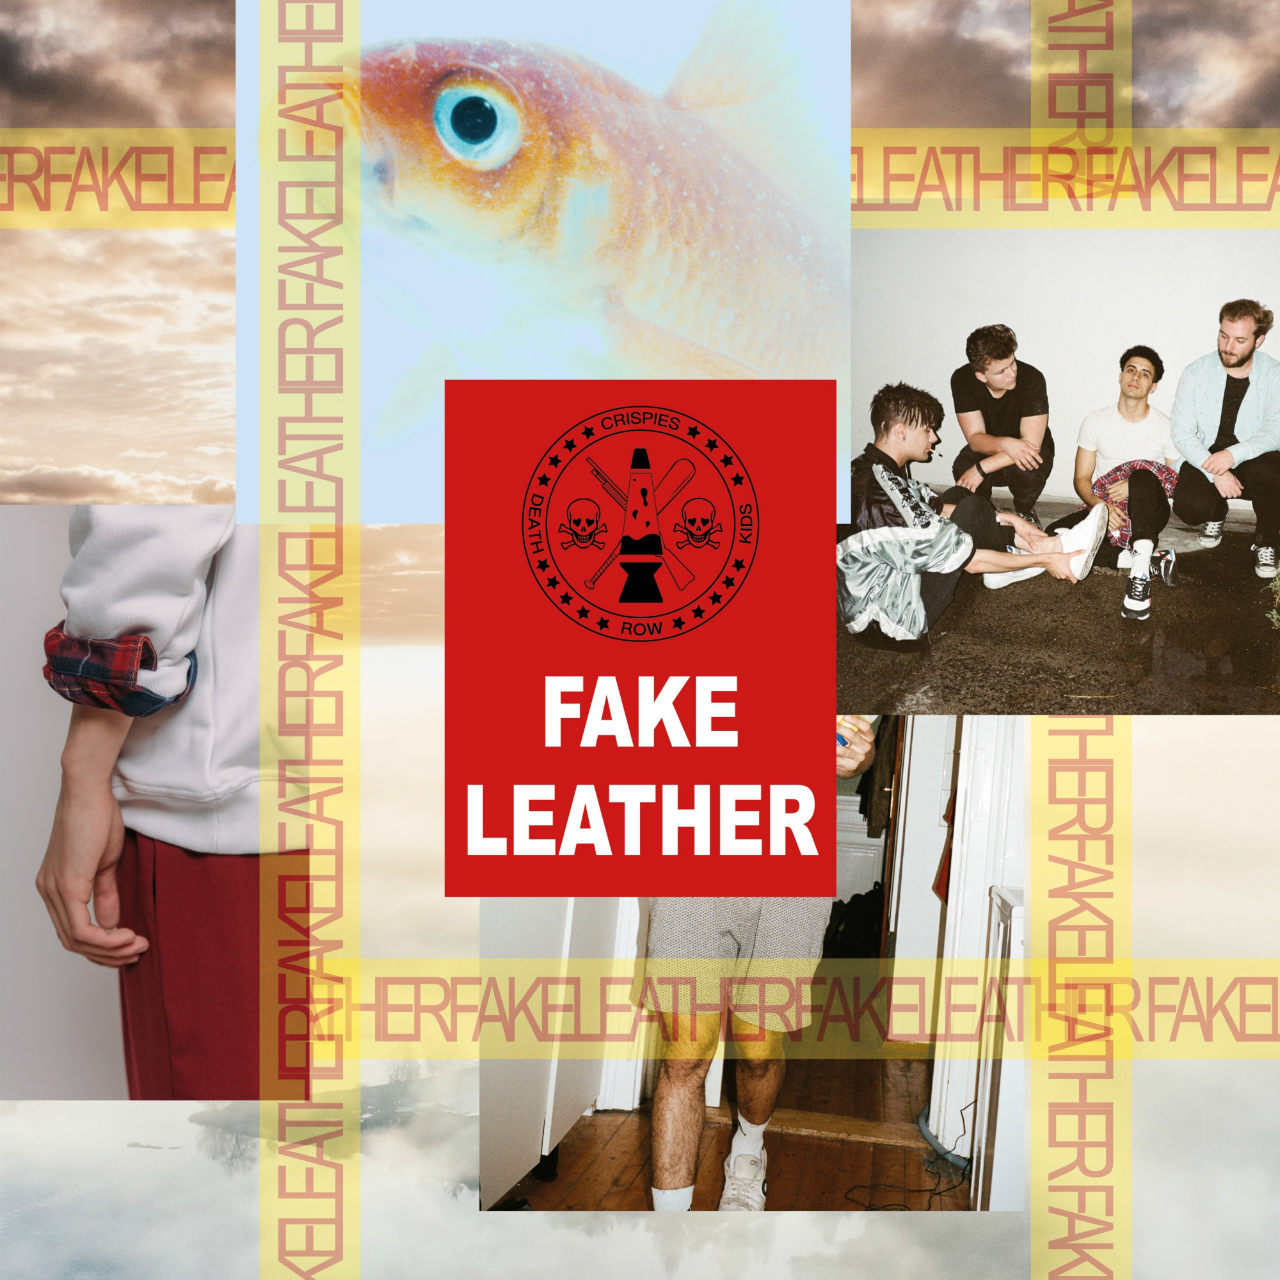 "Plattencover ""Fake Leather"" von The Crispies"